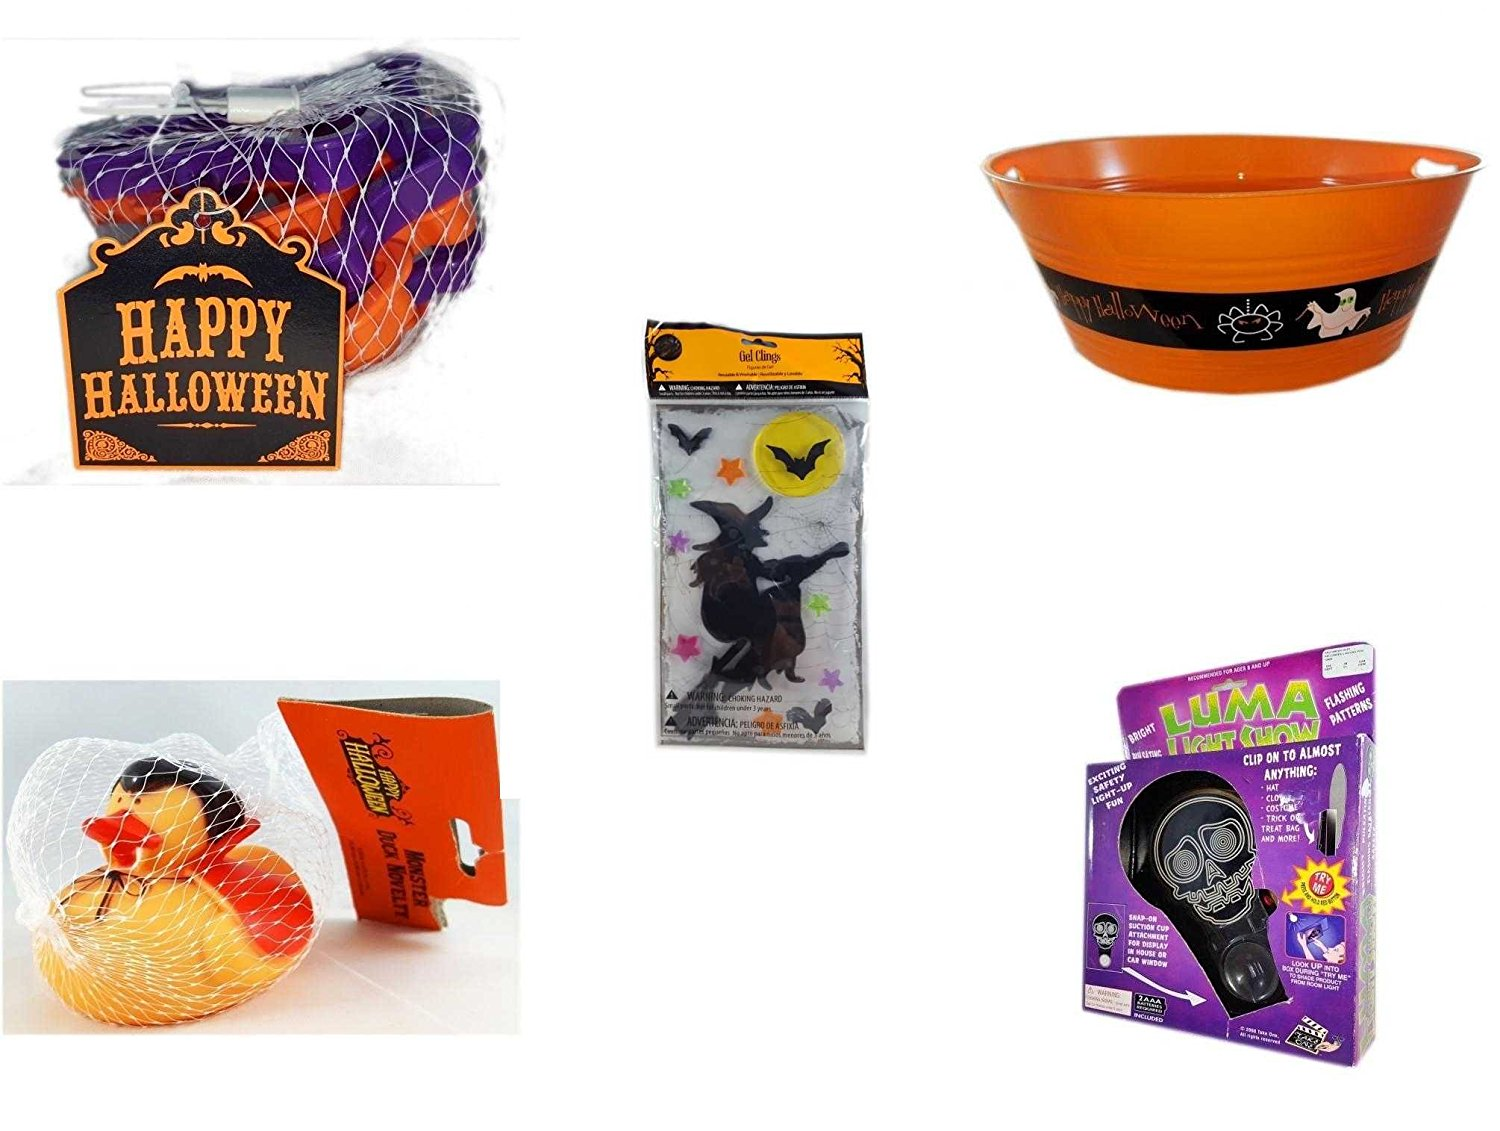 "Halloween Fun Gift Bundle [5 piece] - Wilton 6-Piece Halloween Cookie Cutter Set - 17.75 Inch Orange ""Happy Halloween"" Party Tub - Gel Clings Witch, Bats, Stars - Happy Halloween Monster Duck Novel"